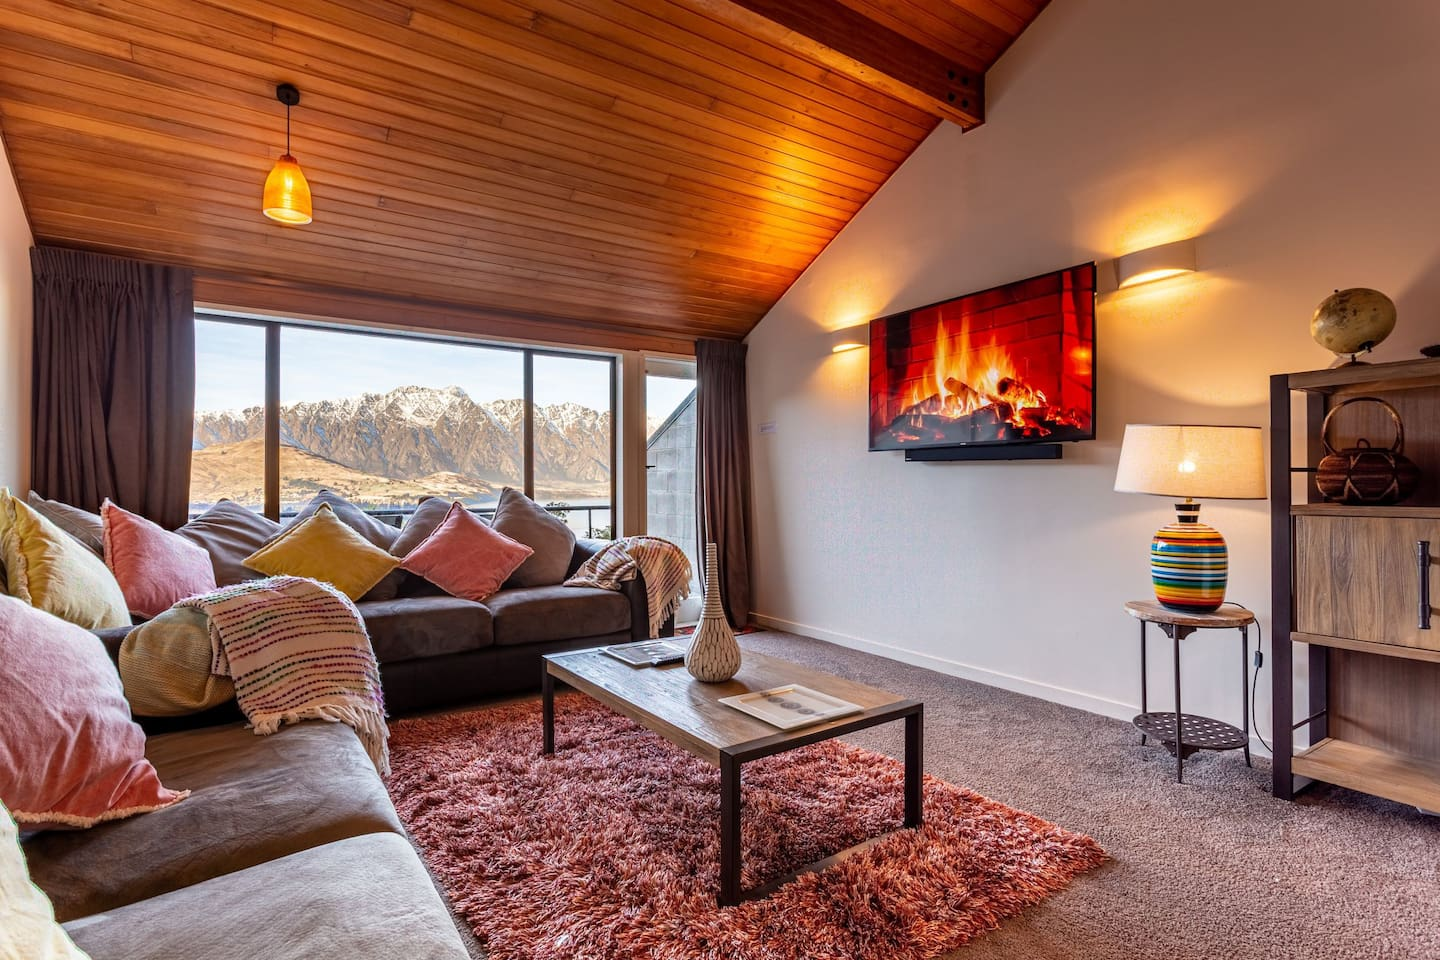 Incredible lake and mountain views.  Warm opulent lounge furnishings.